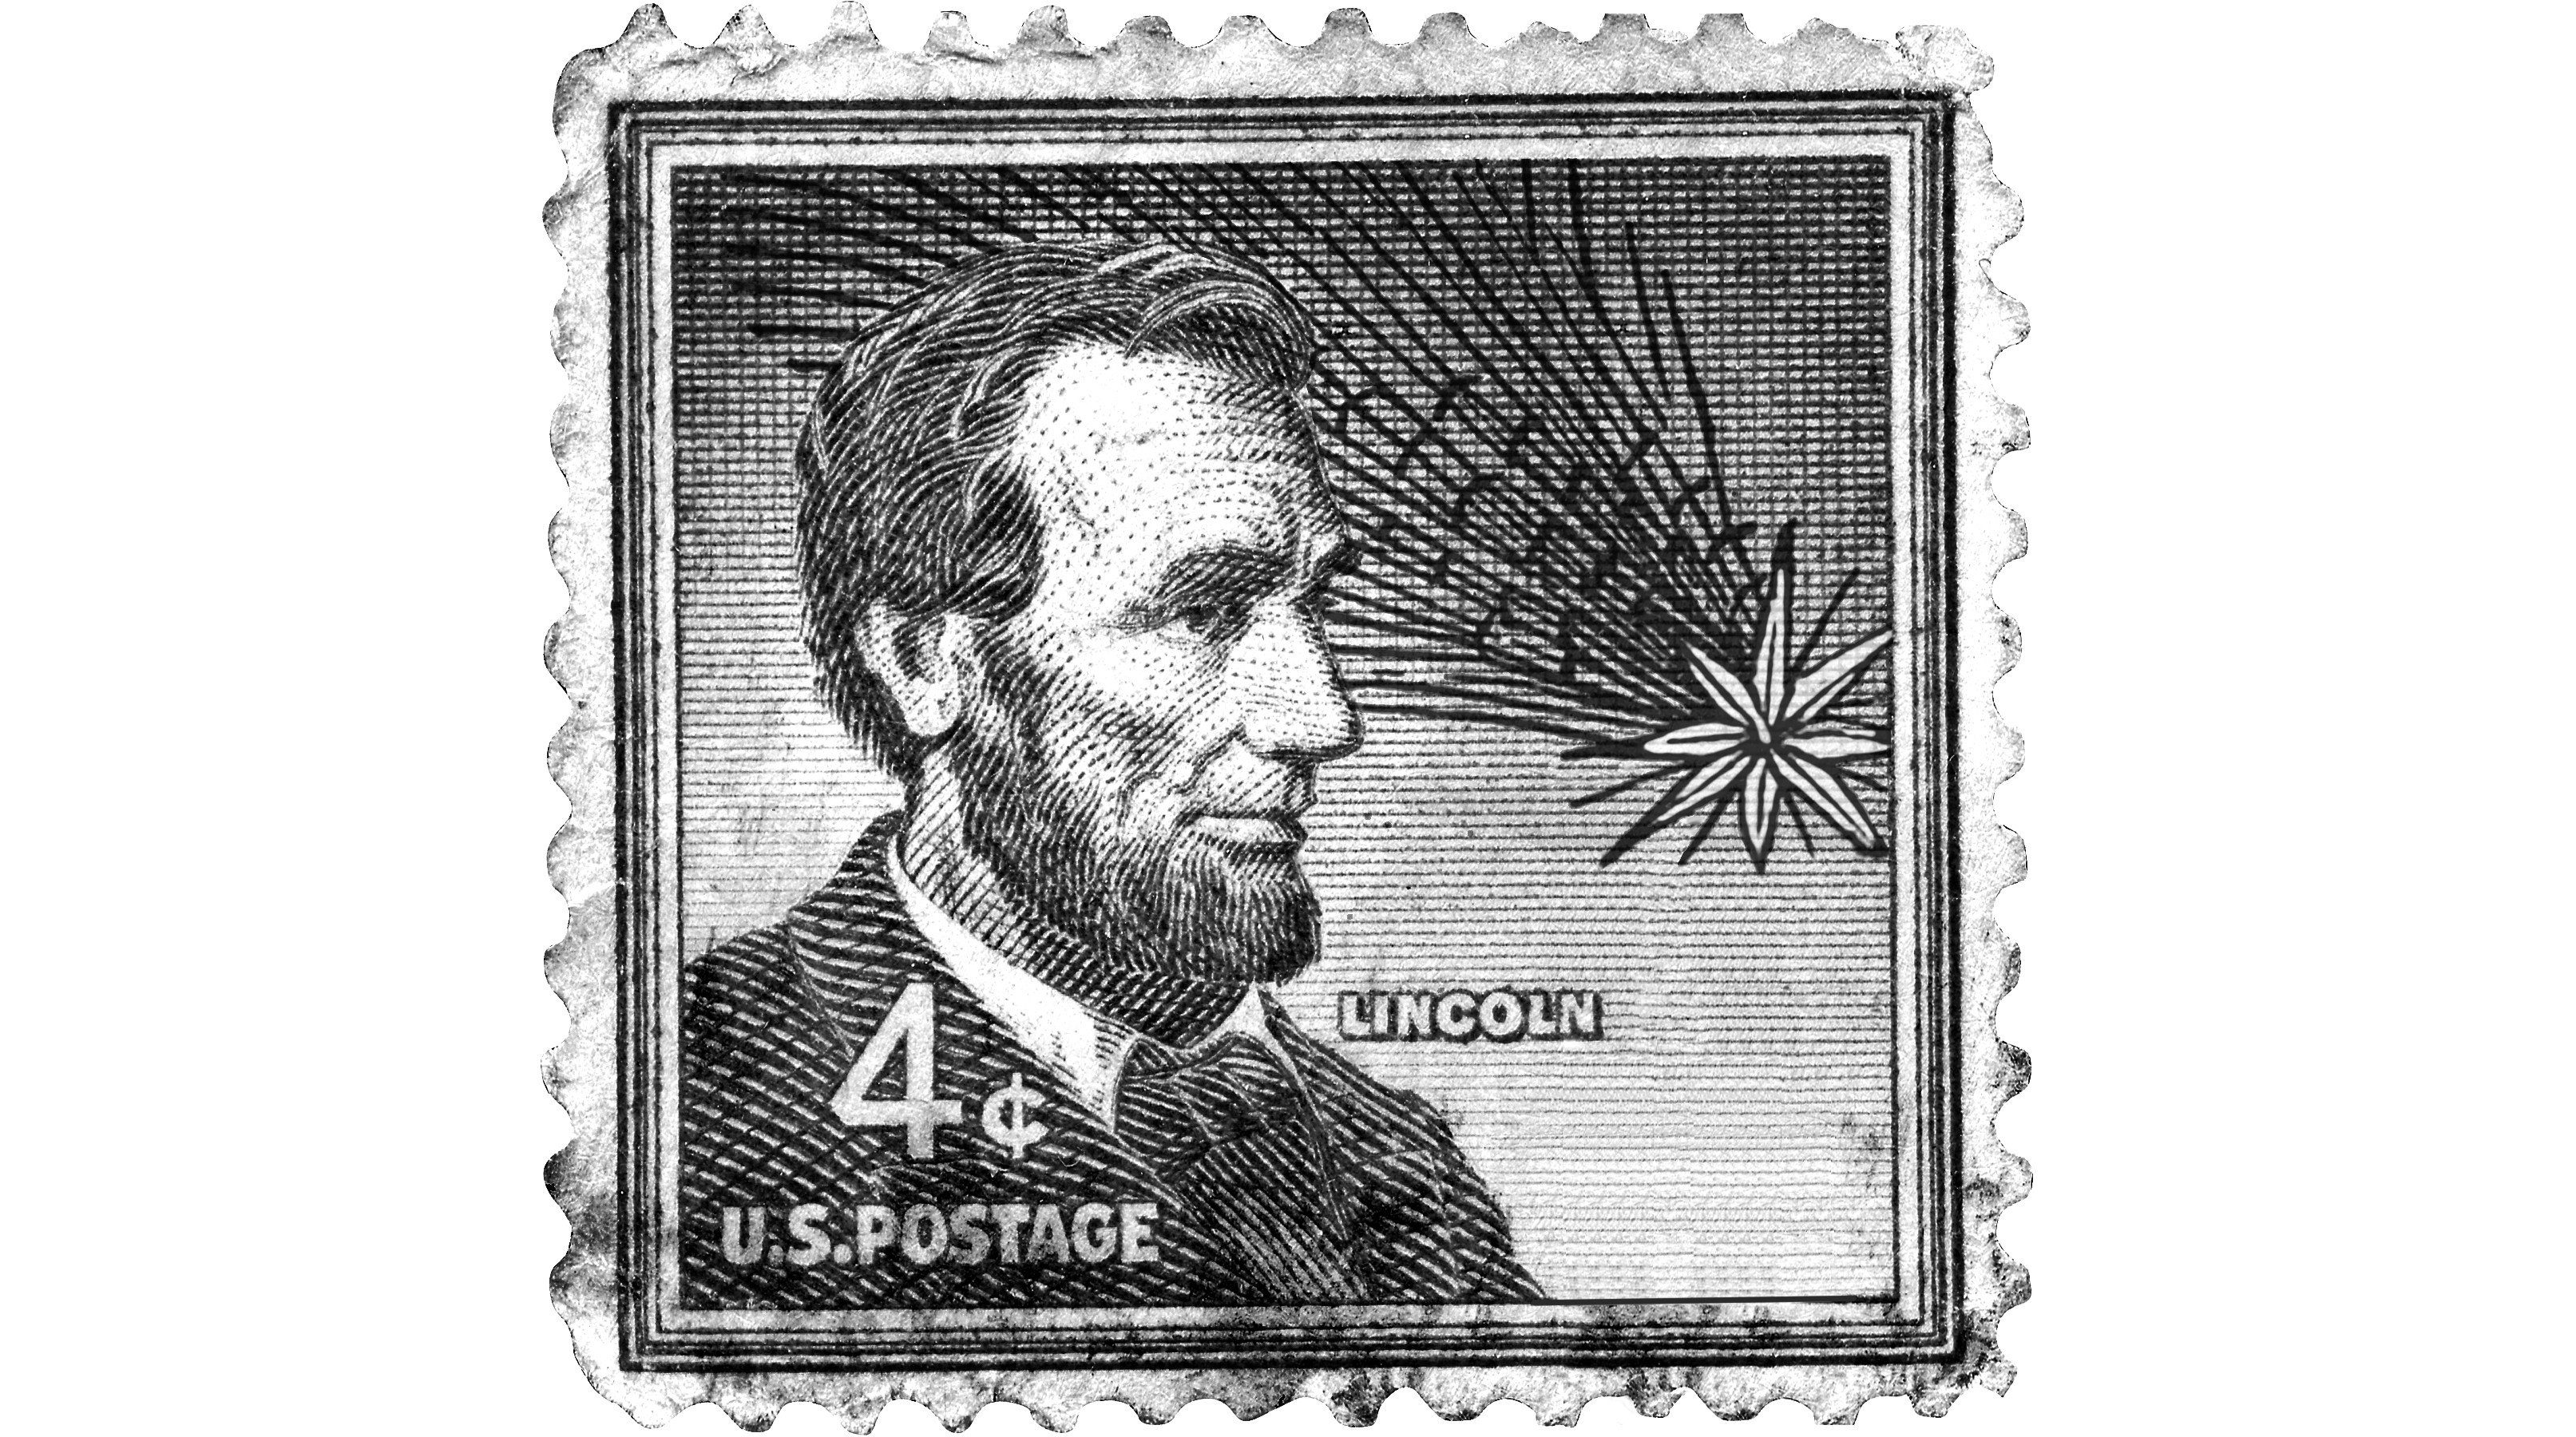 the earth has entered the path of comet swift-tuttle, which first passed by when Abraham Lincoln was President...